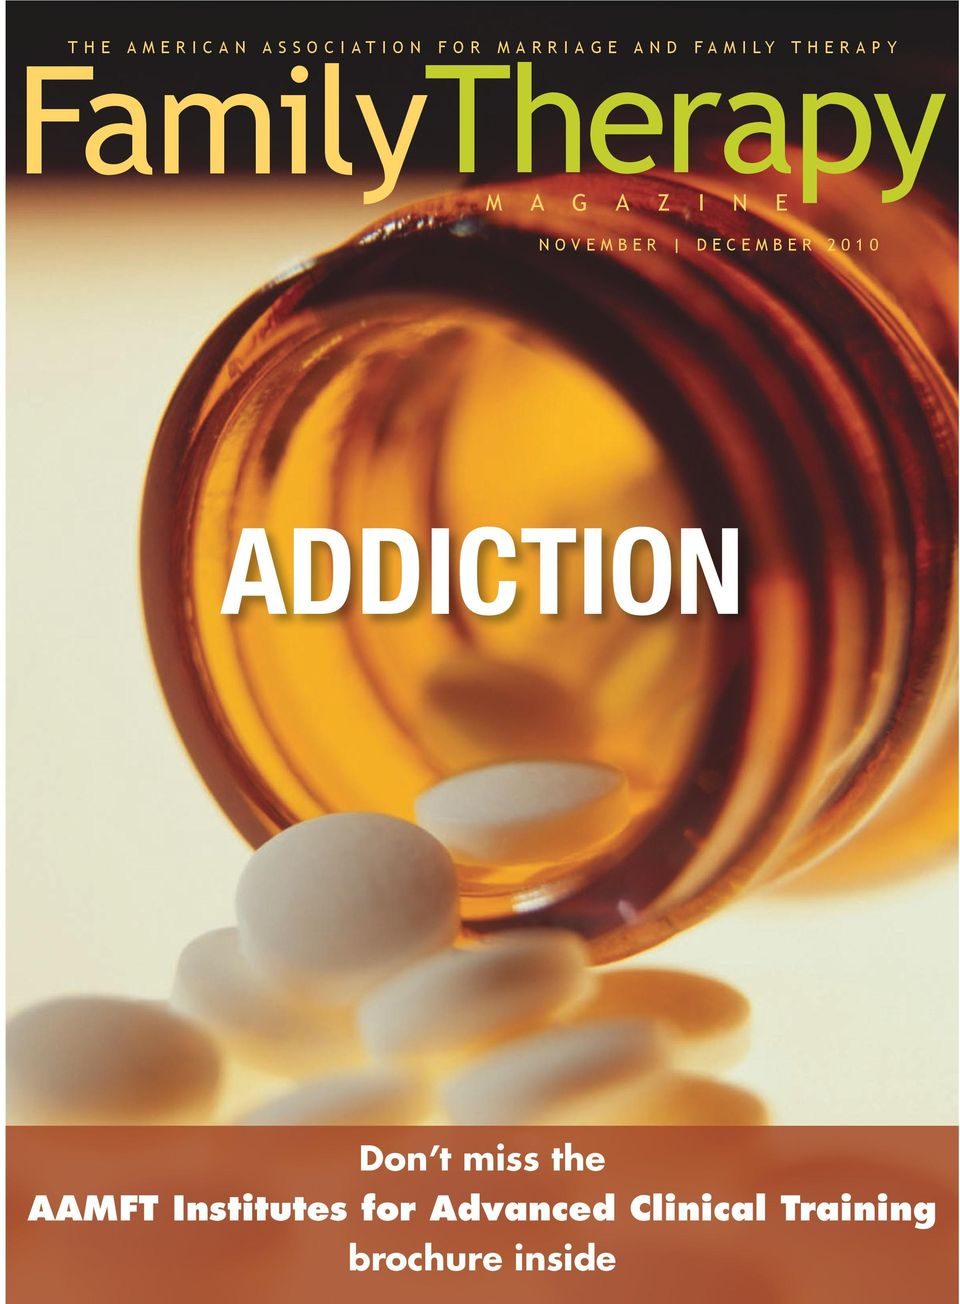 december 2010 addiction Don t miss the AAMFT